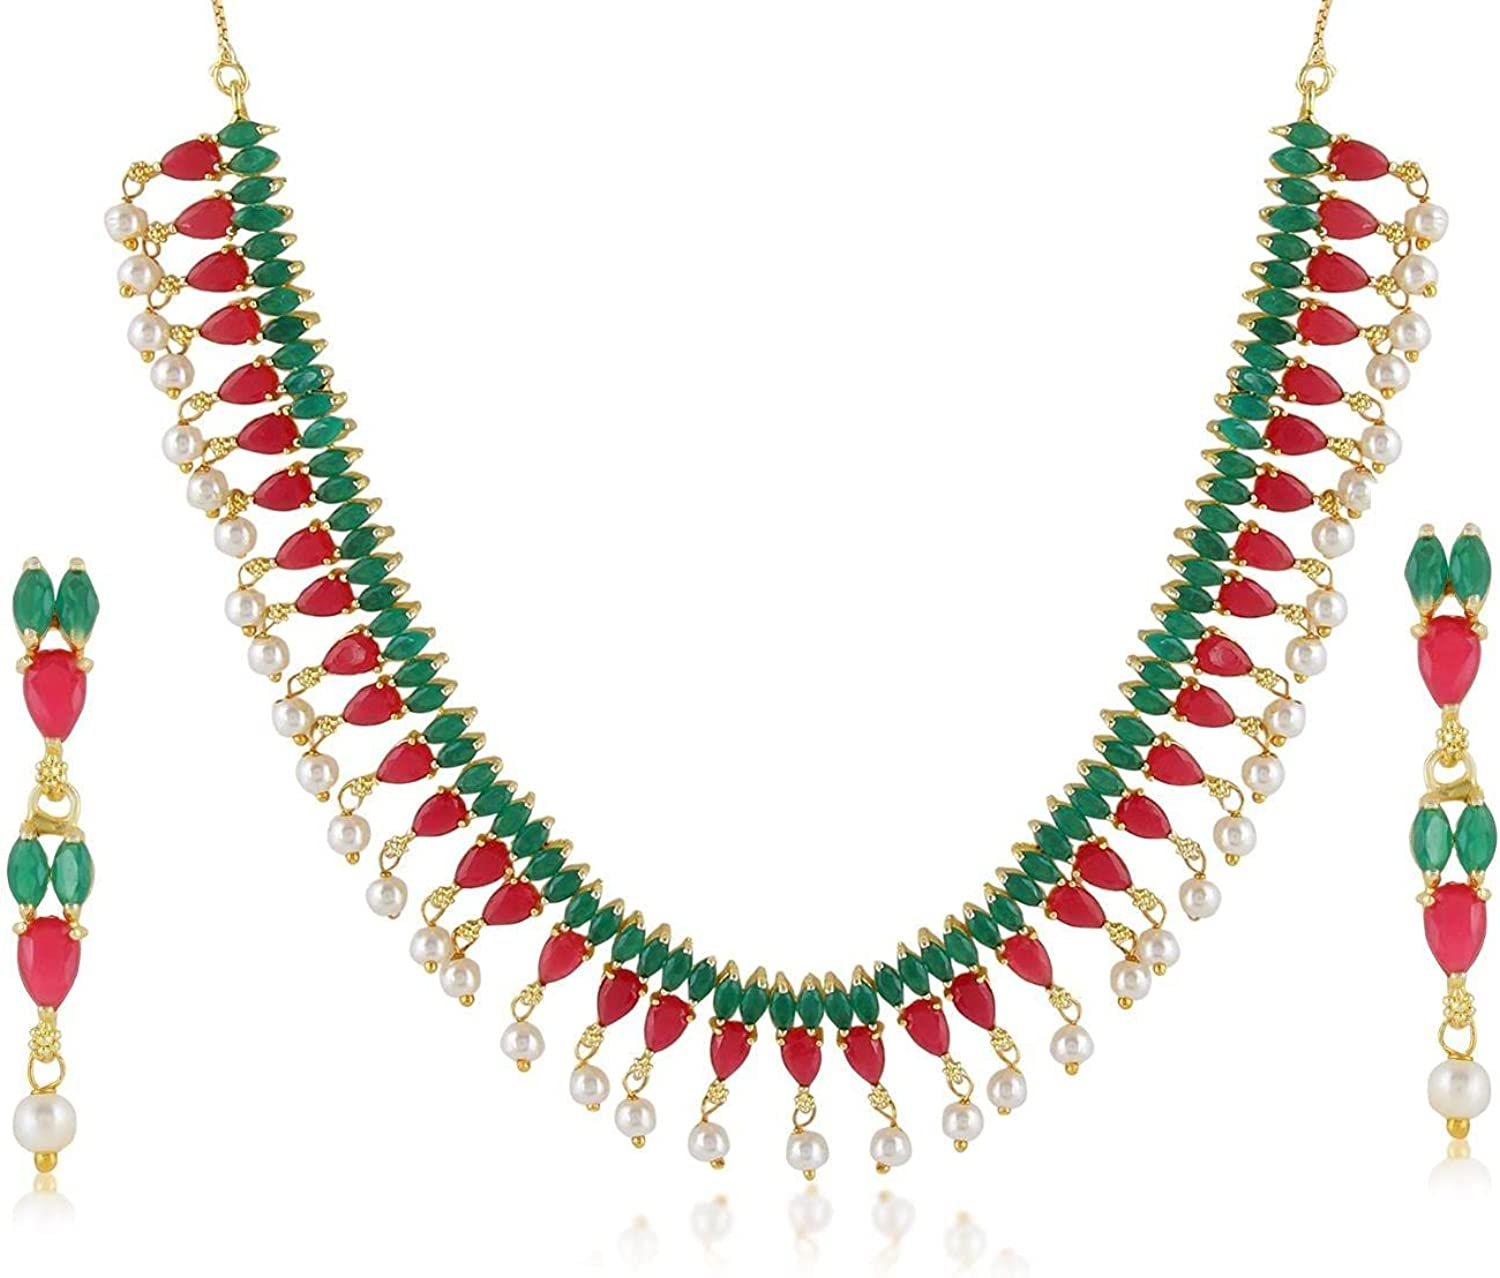 Efulgenz Indian Bollywood Gold Plated Green Crystal Rhinestone Faux Pearl Choker Necklace Dangle Earring Jewelry Set